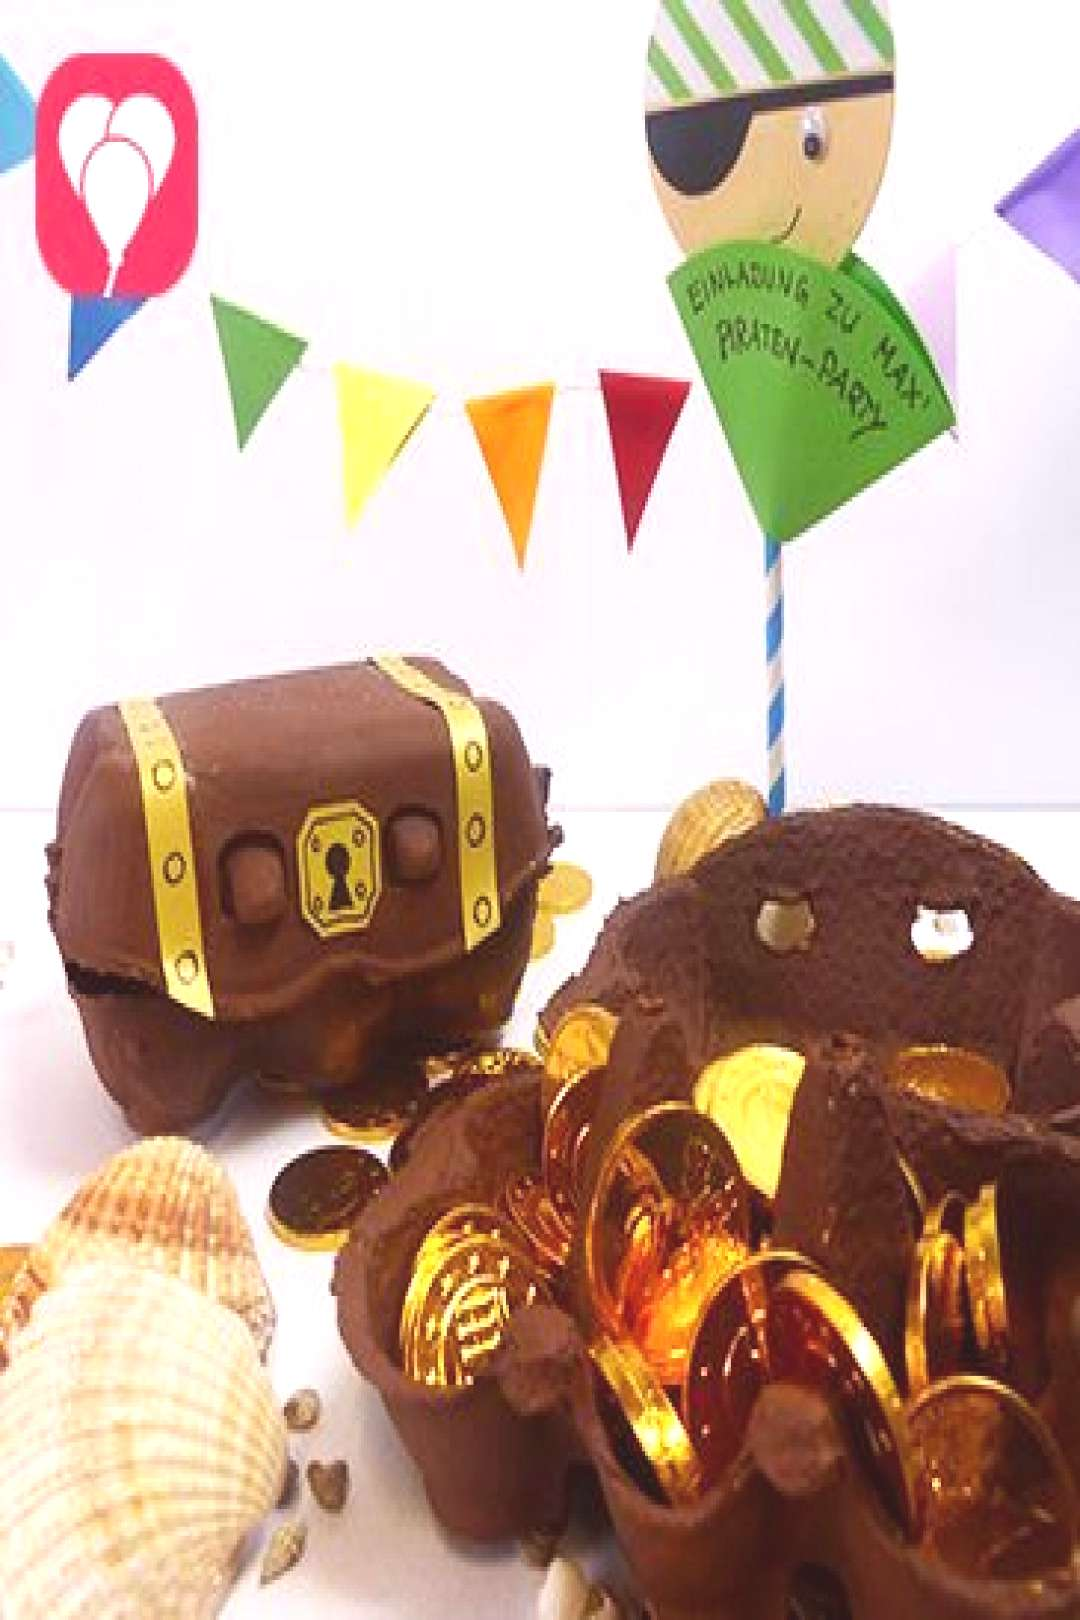 For real pirates tinker treasure chest - balloonas - -